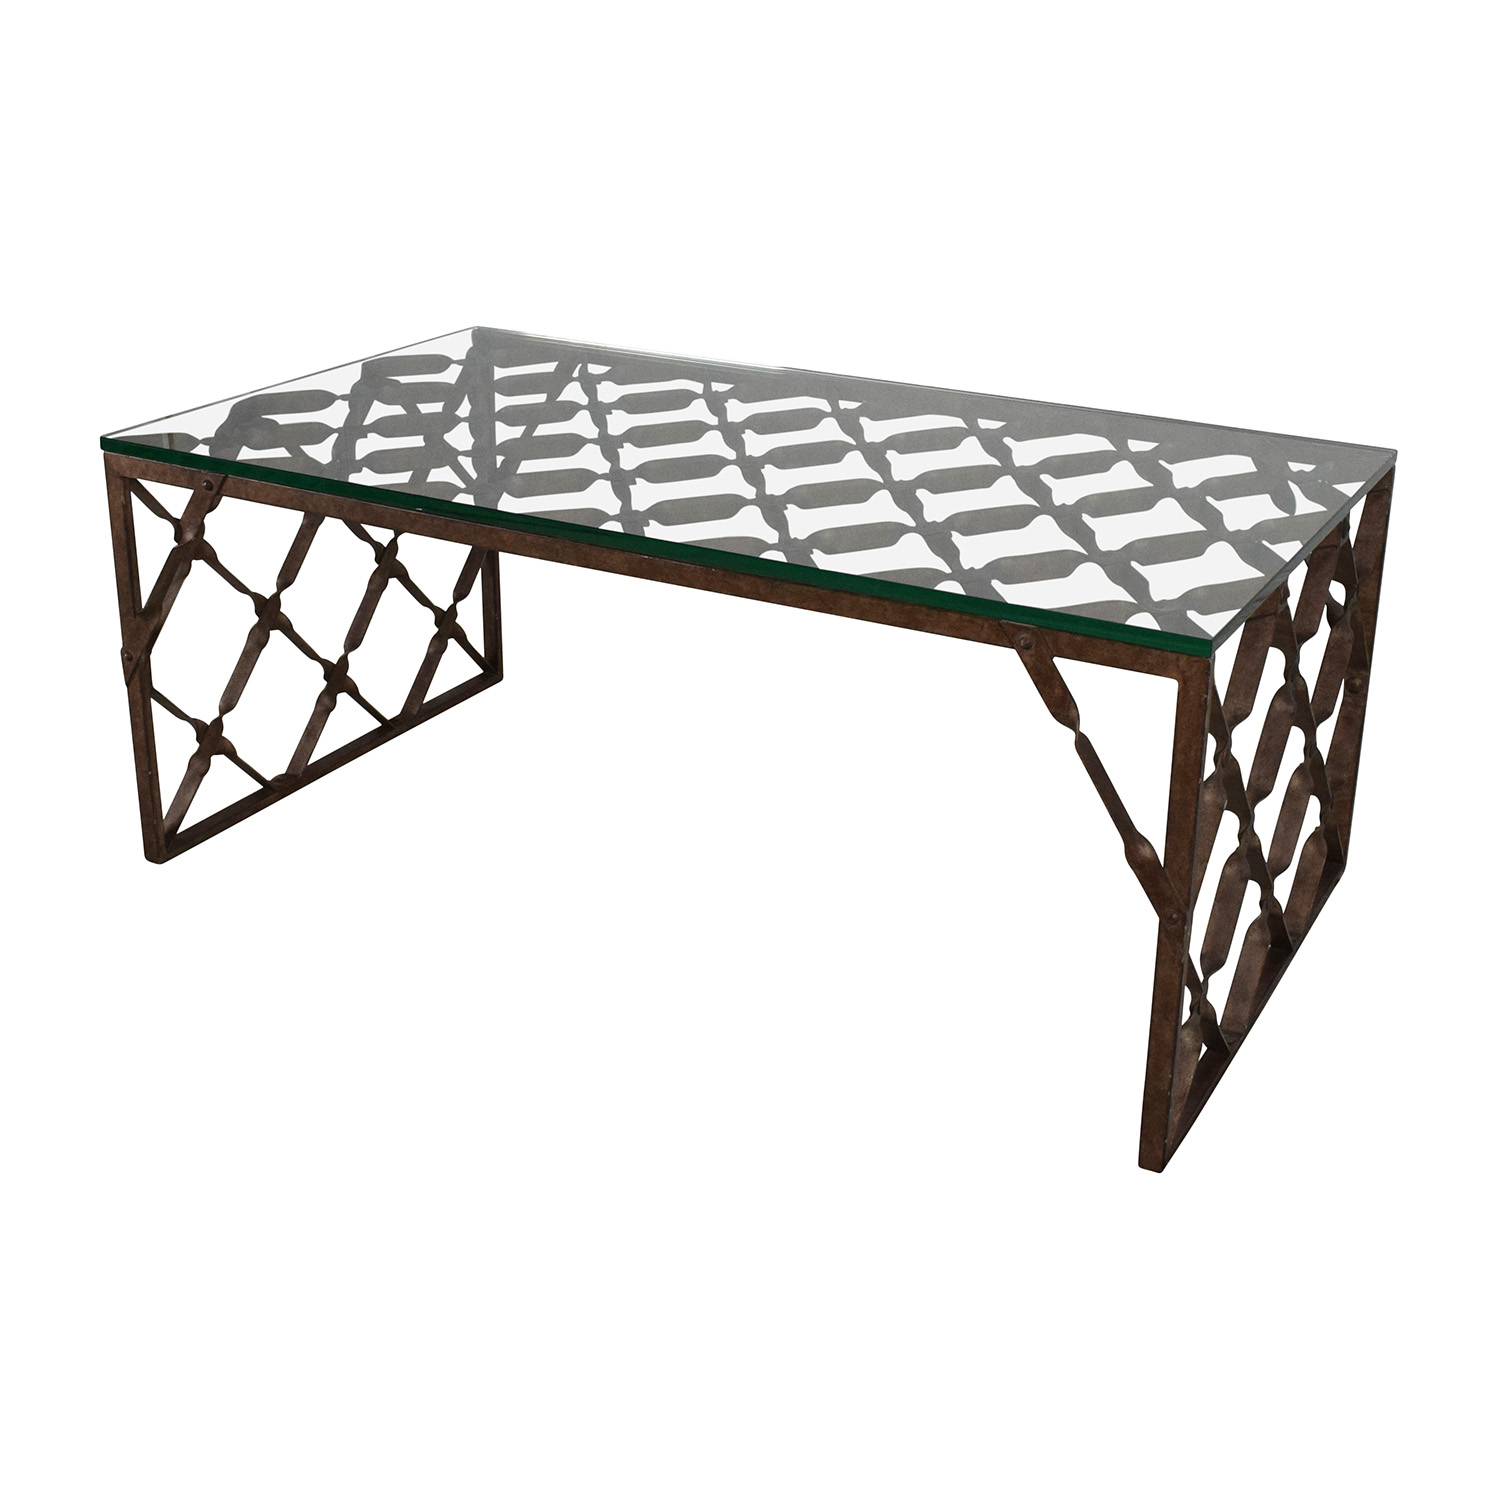 82 Off Crate And Barrel Crate Barrel Glass Top Metalwork Coffee Table Tables